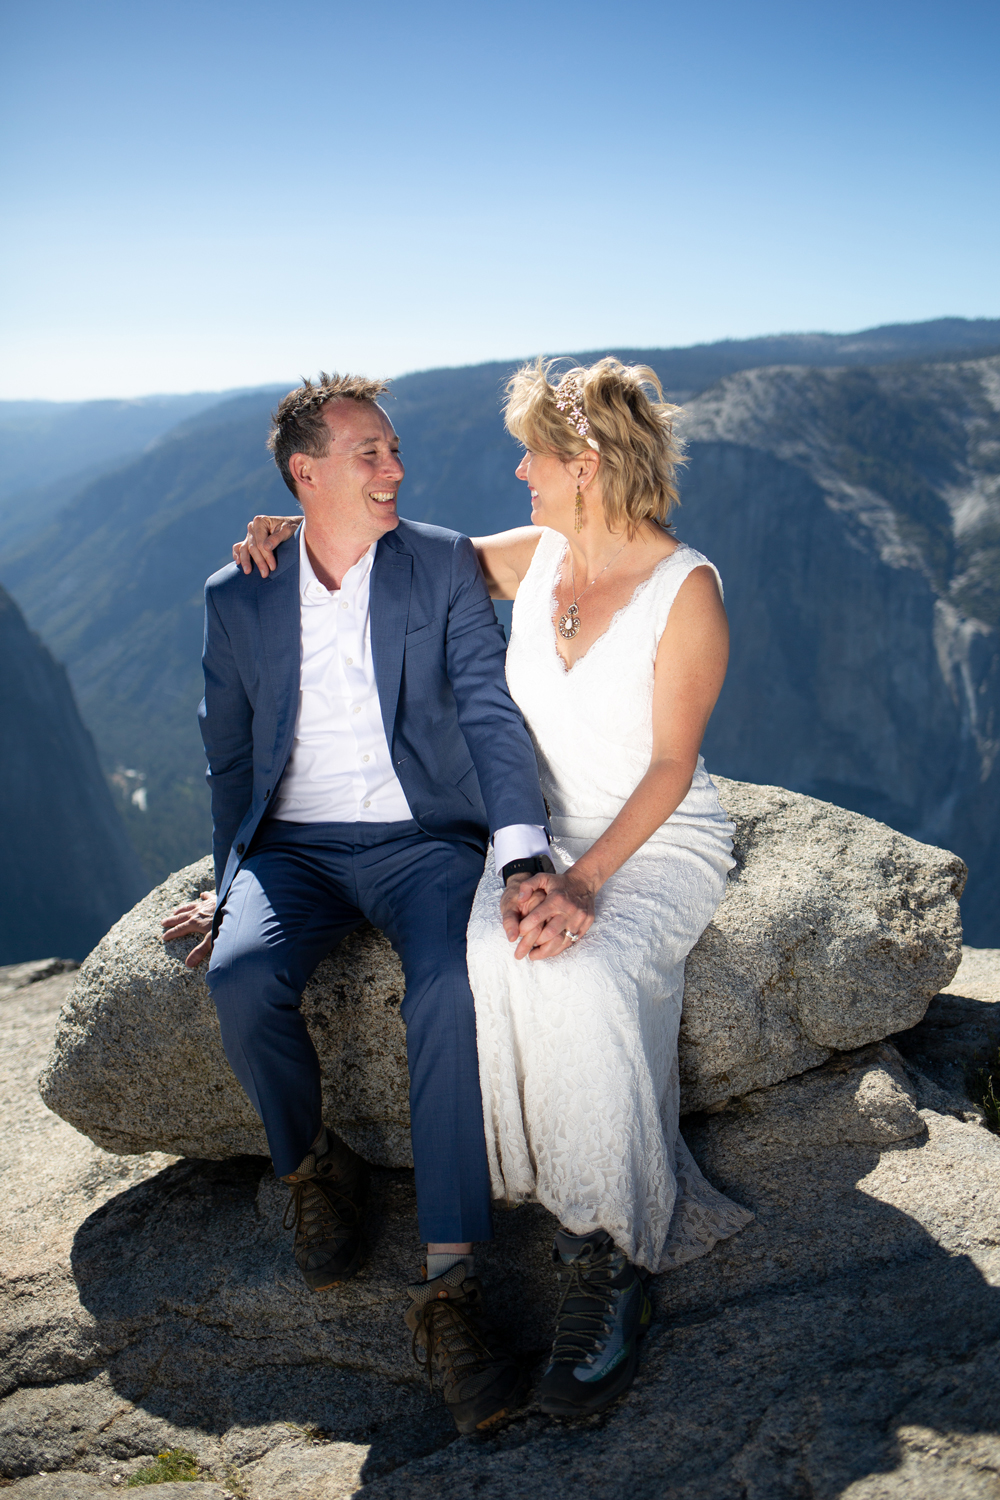 Yosemite-Wedding-photography-lisa-james (12).jpg